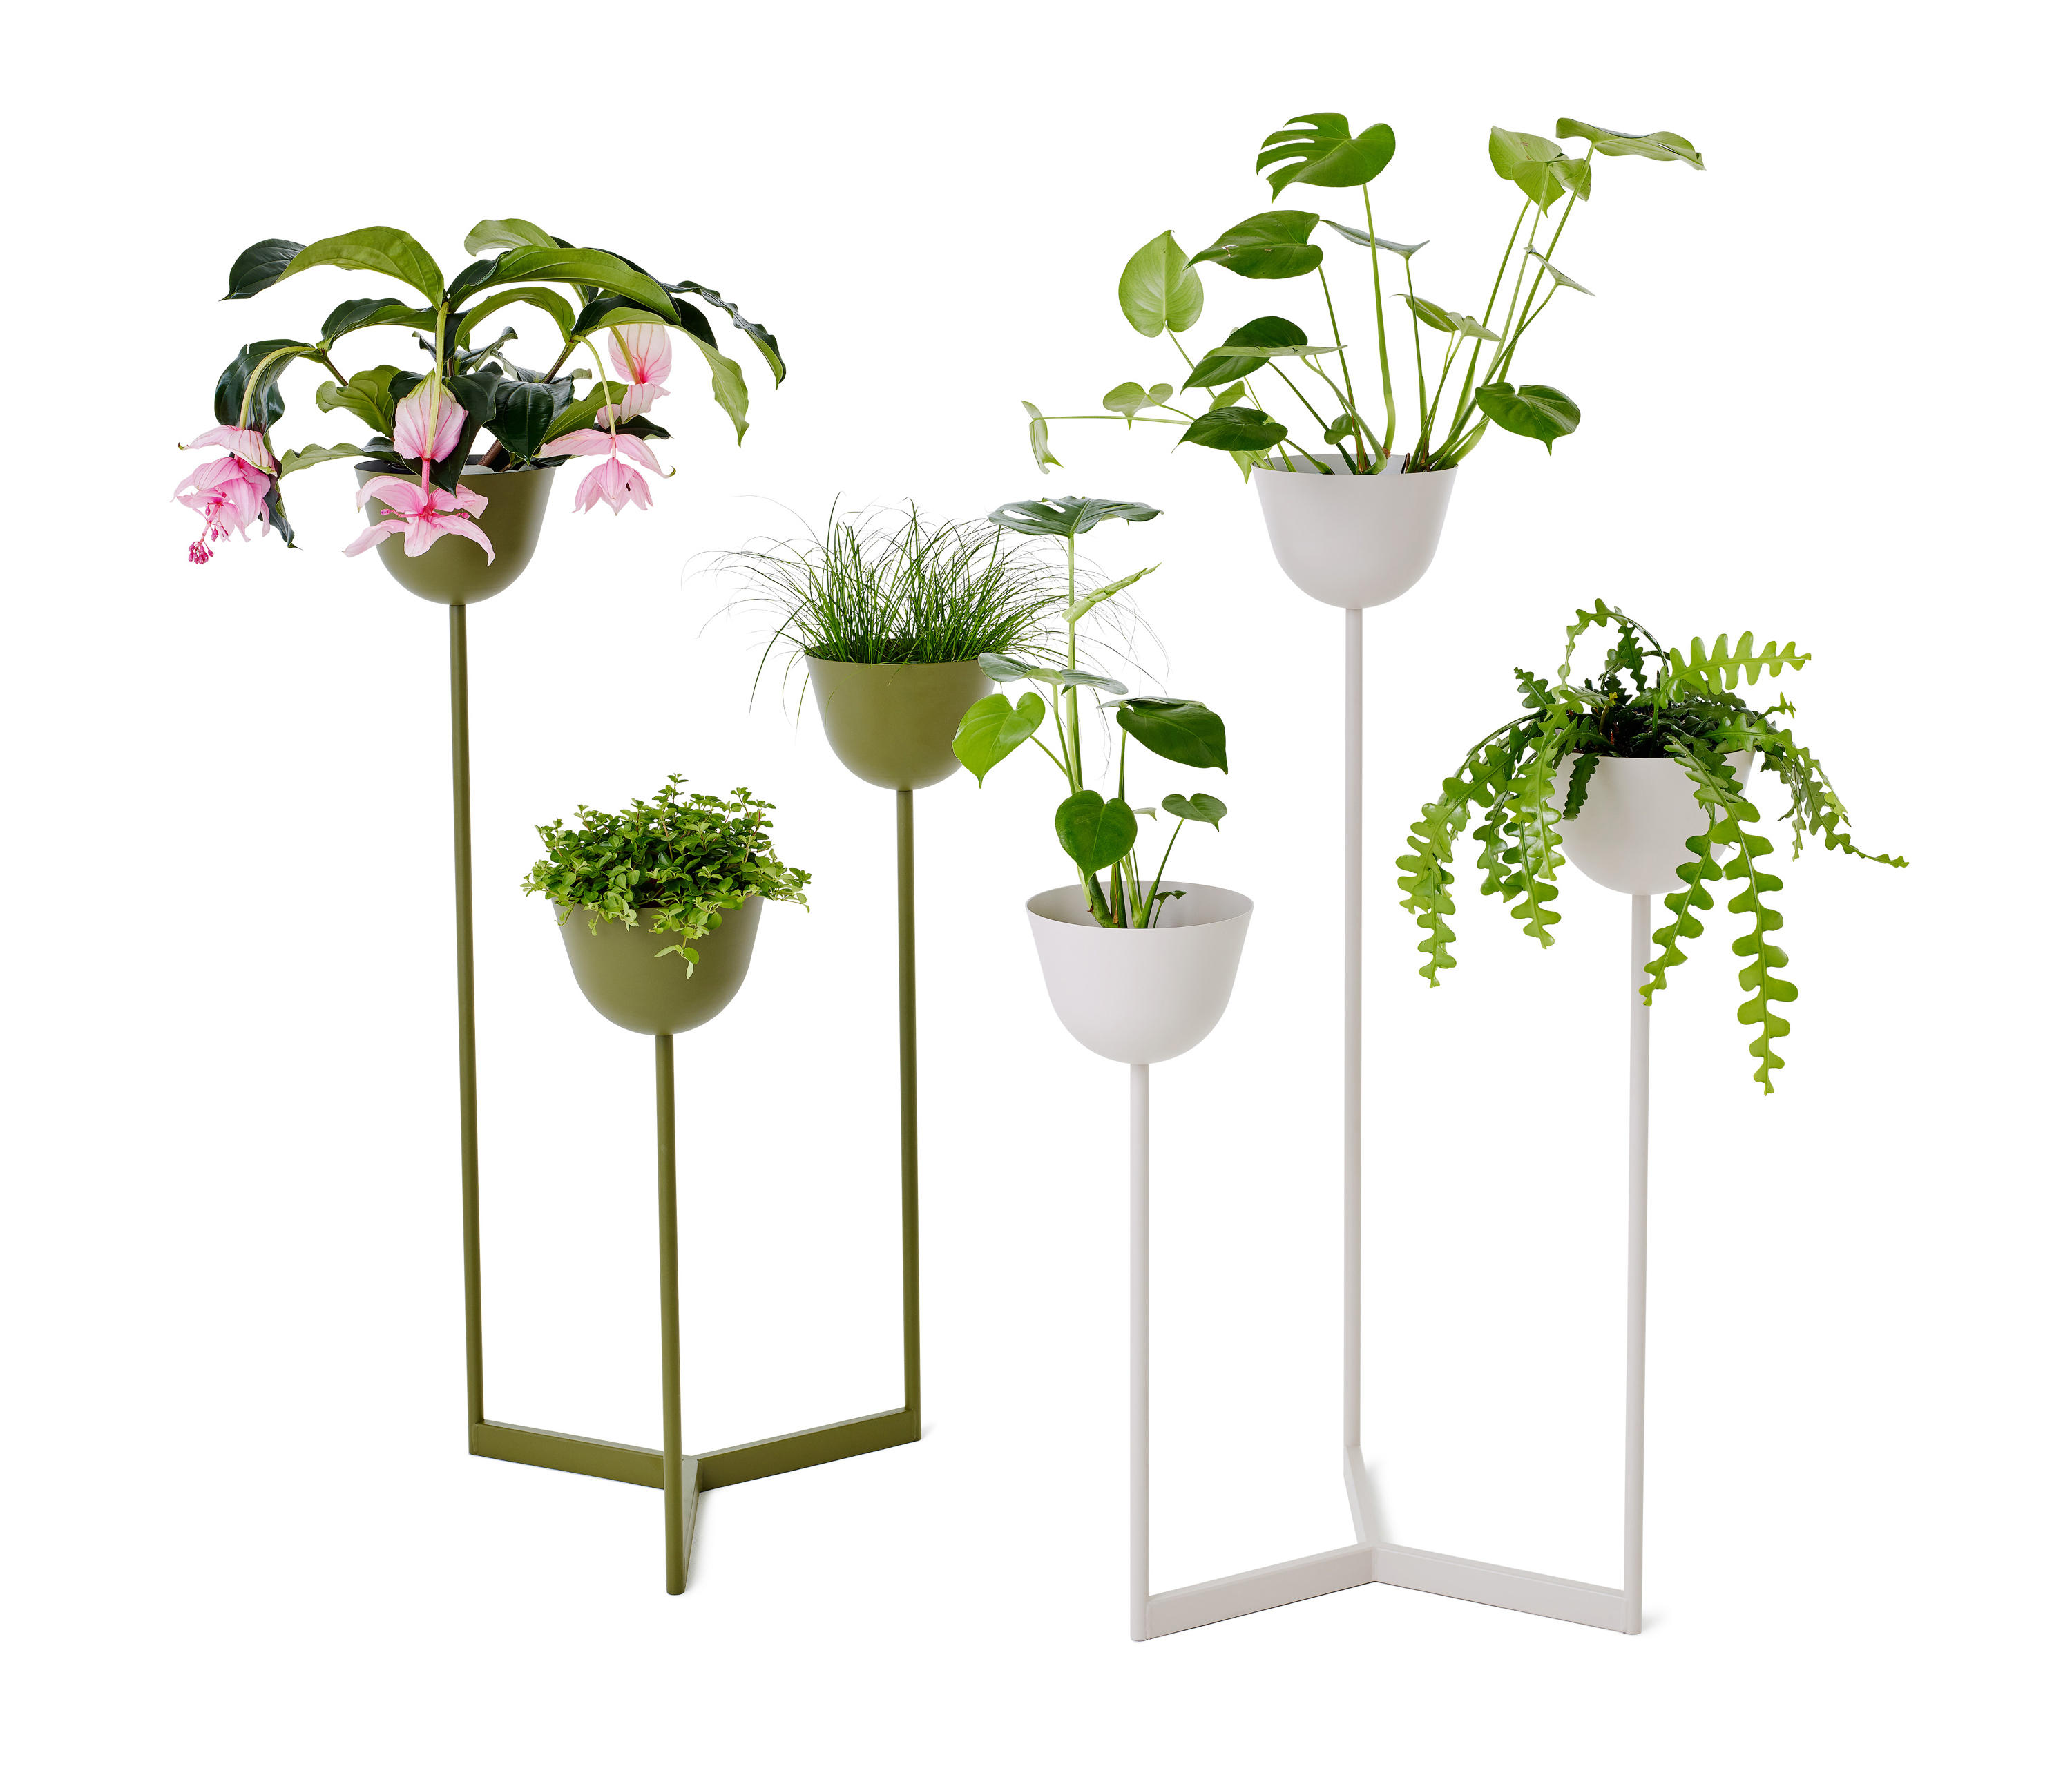 Pots Planters High Quality Designer Products Architonic